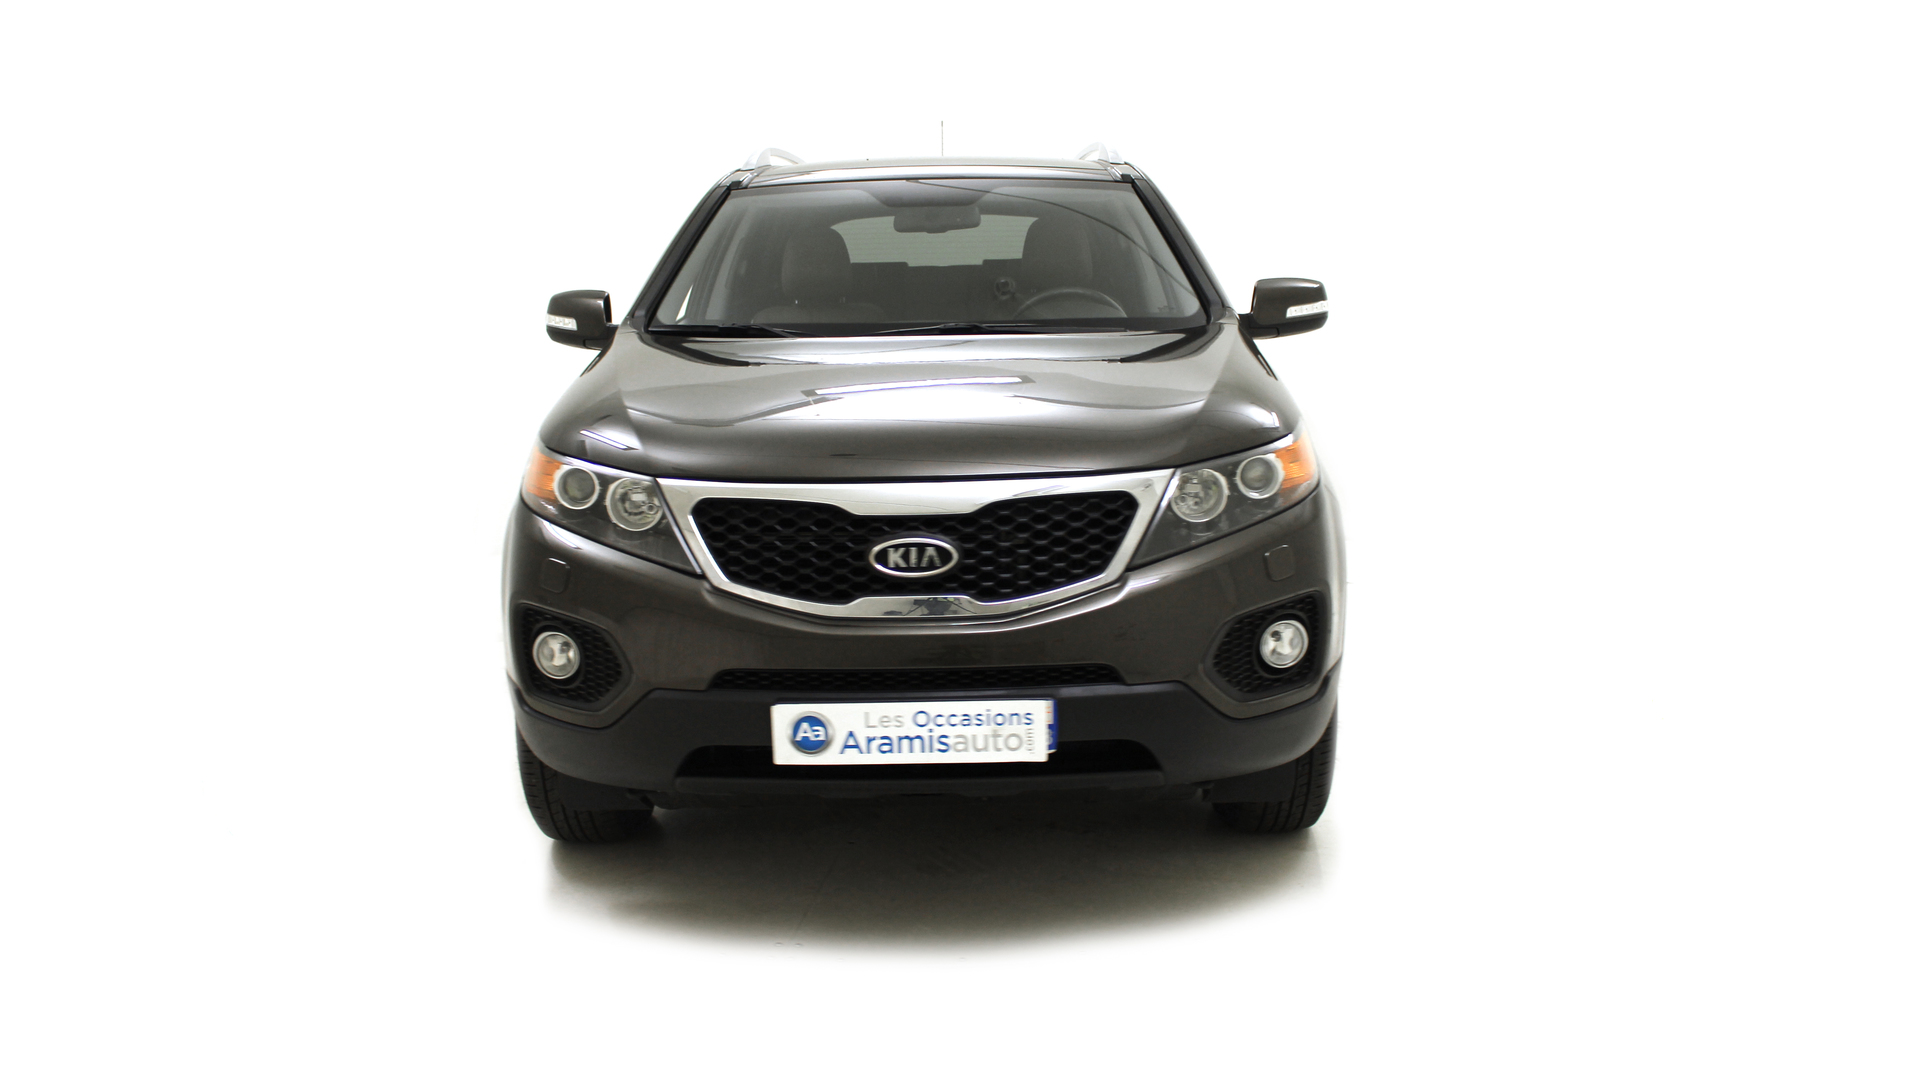 kia sorento 4x4 et suv 5 portes diesel 2 2 crdi 197 awd 7pl bo te automatique ou. Black Bedroom Furniture Sets. Home Design Ideas